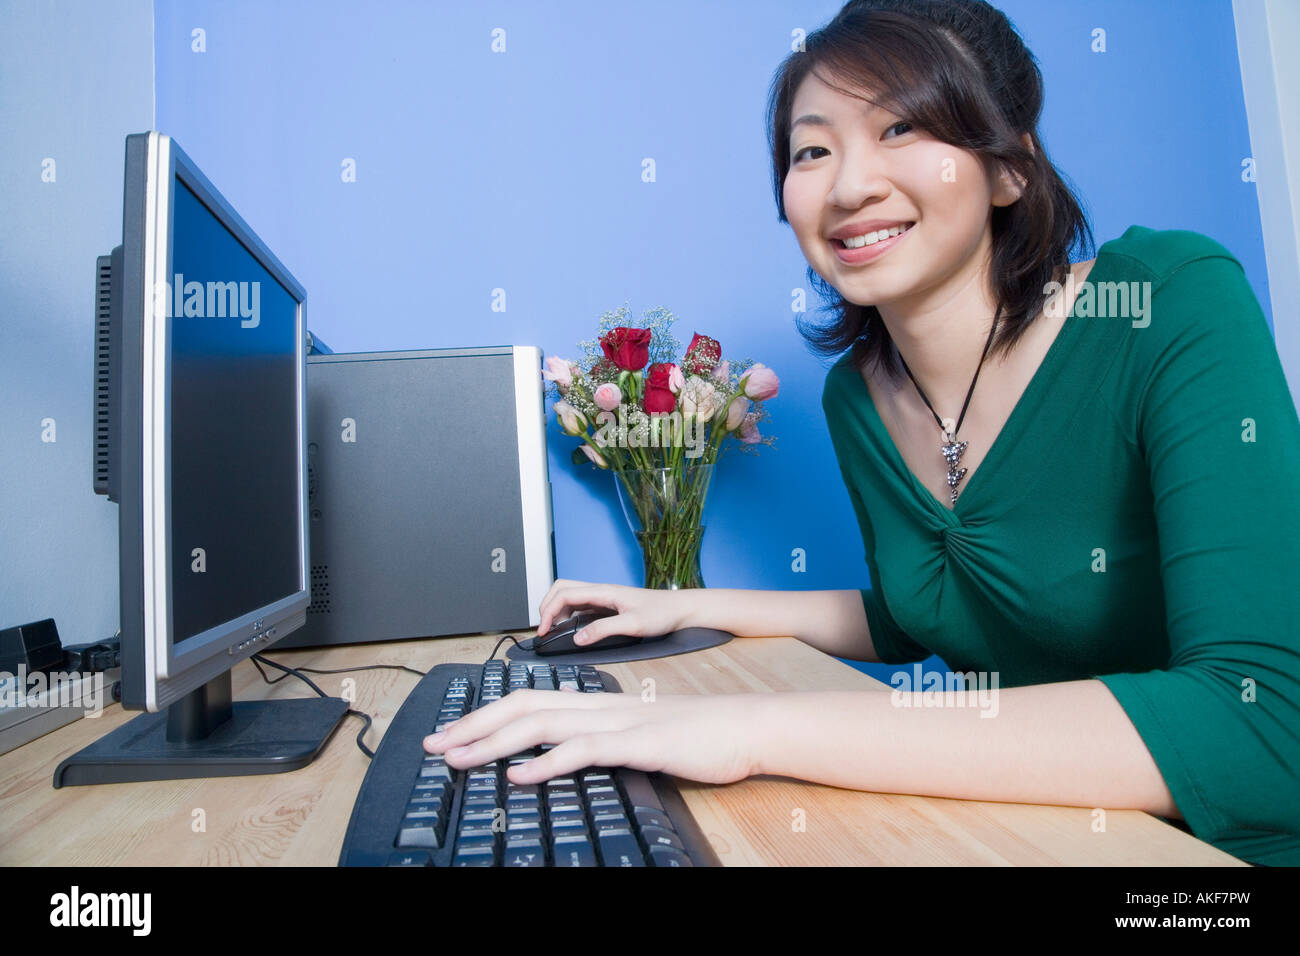 Side profile of a young woman using a computer and smiling Stock Photo